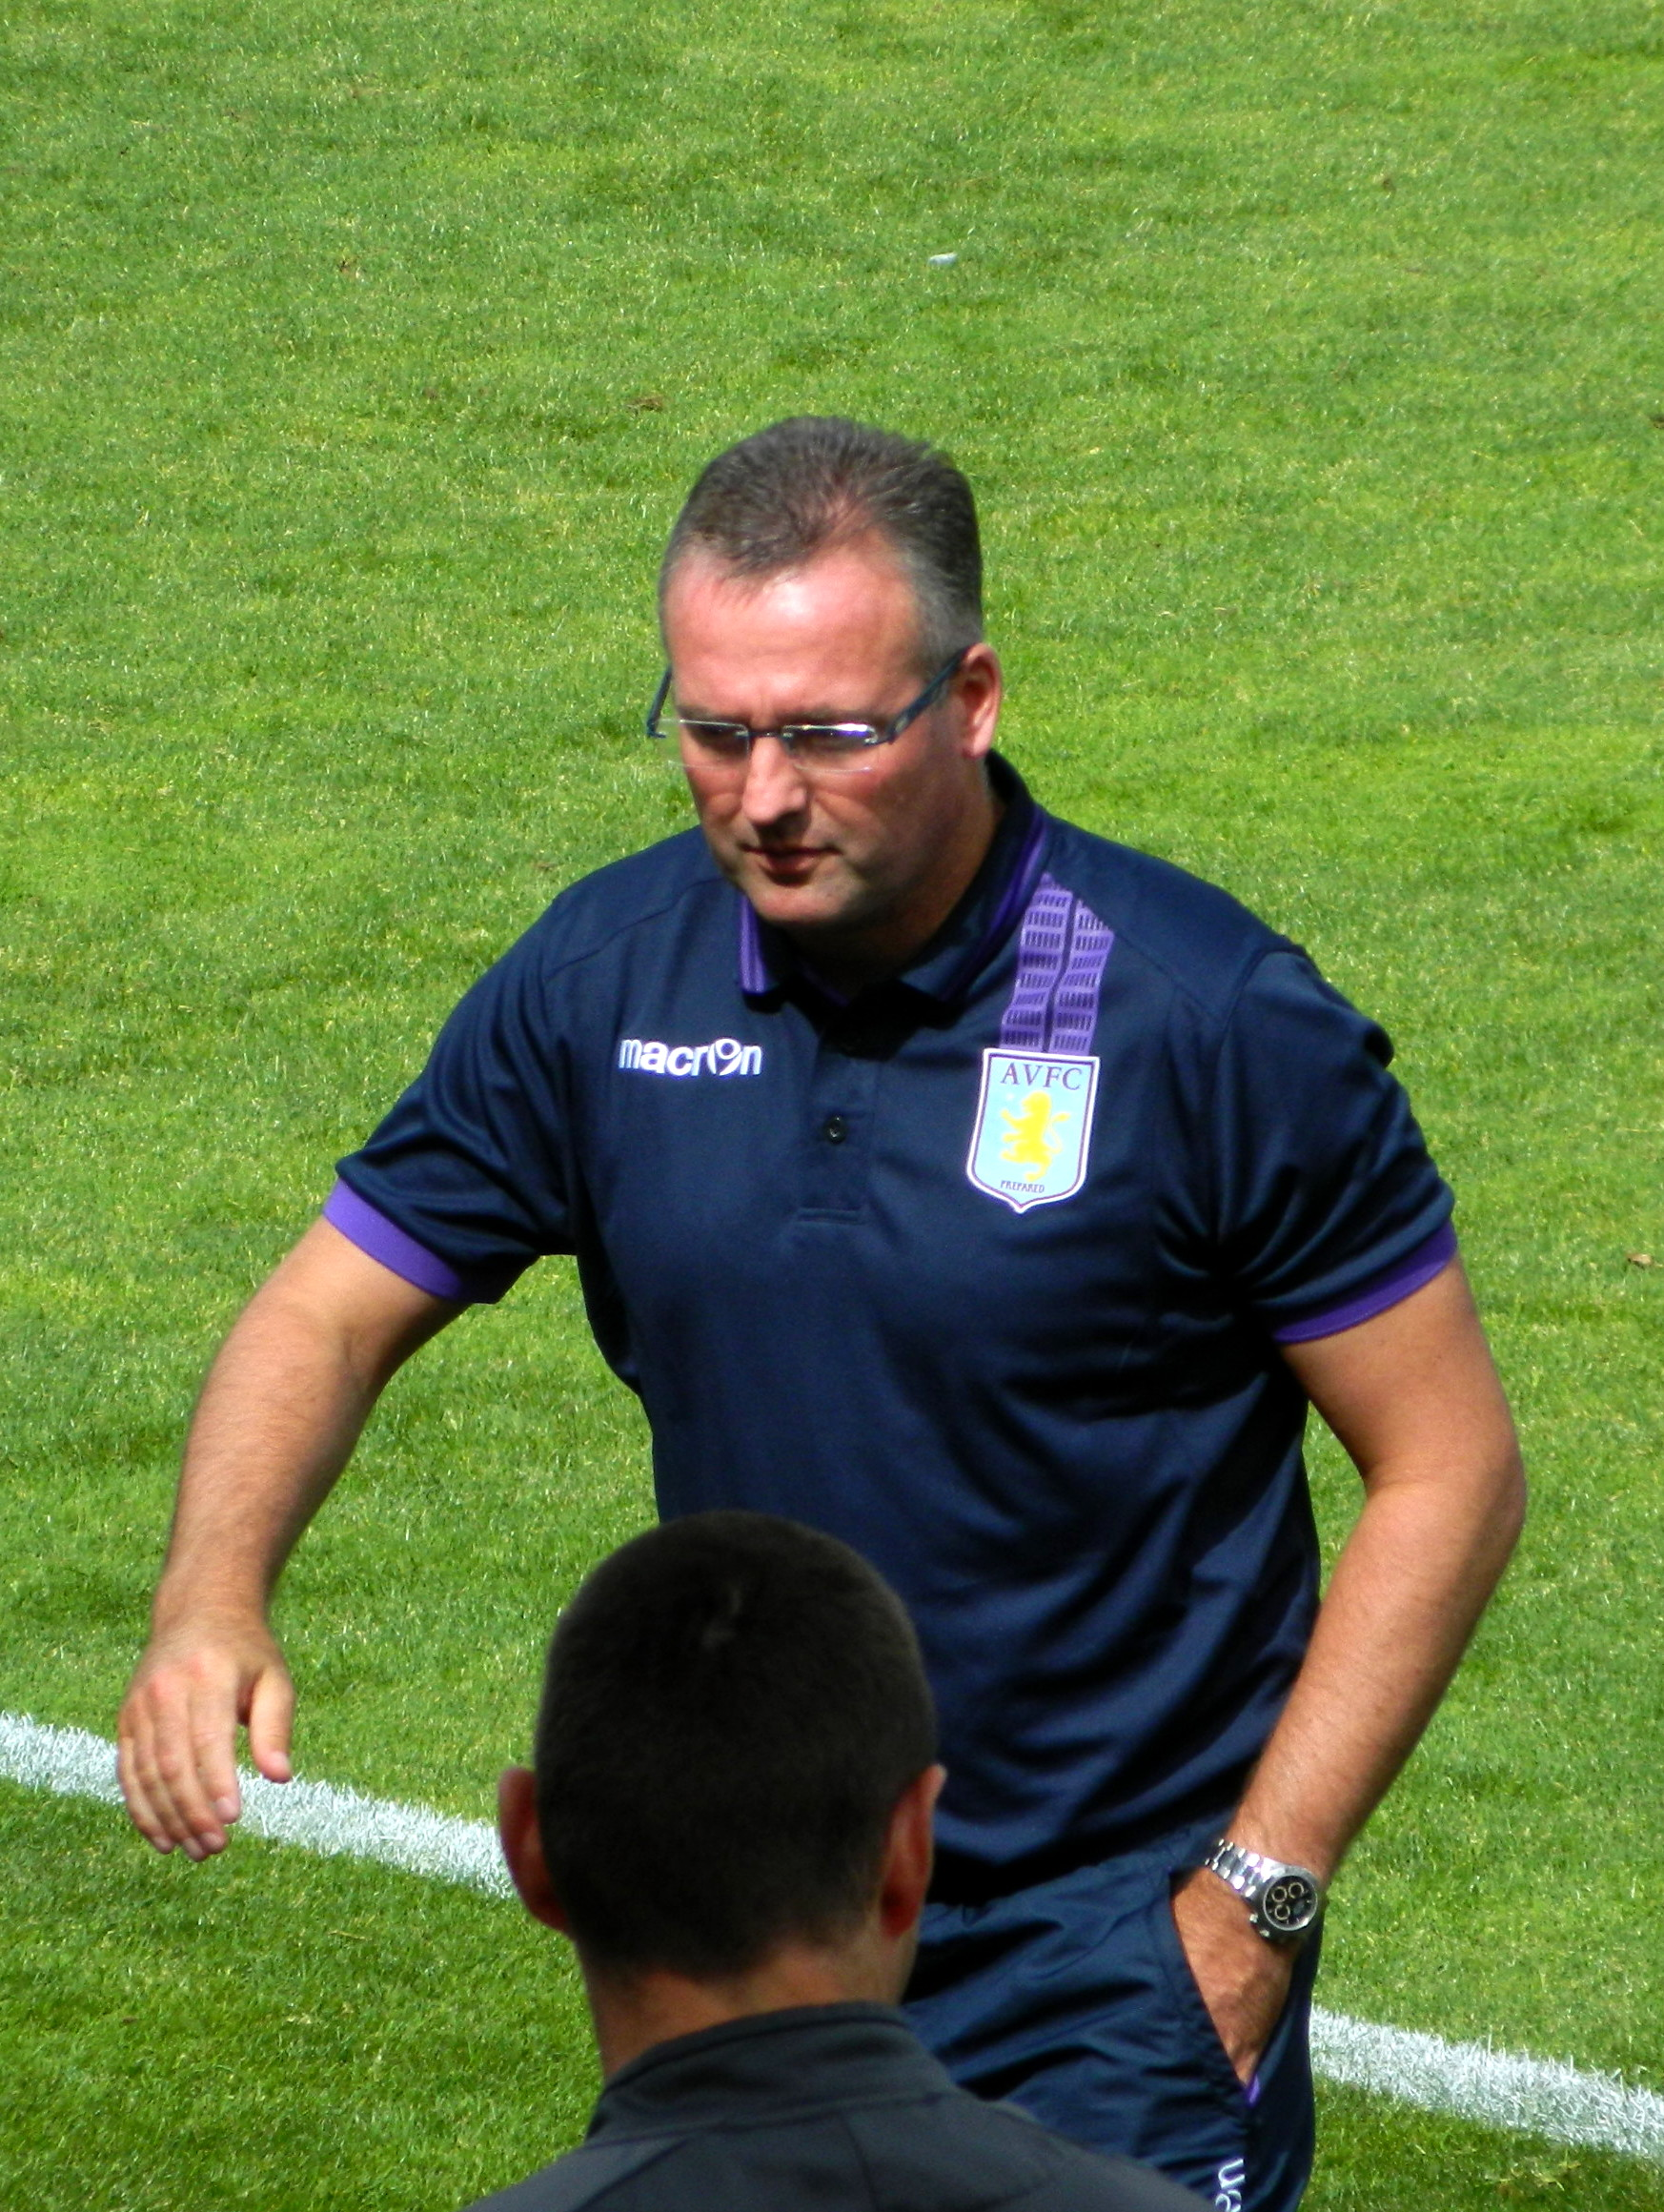 Paul Lambert, manager of Ipswich Town F.C.